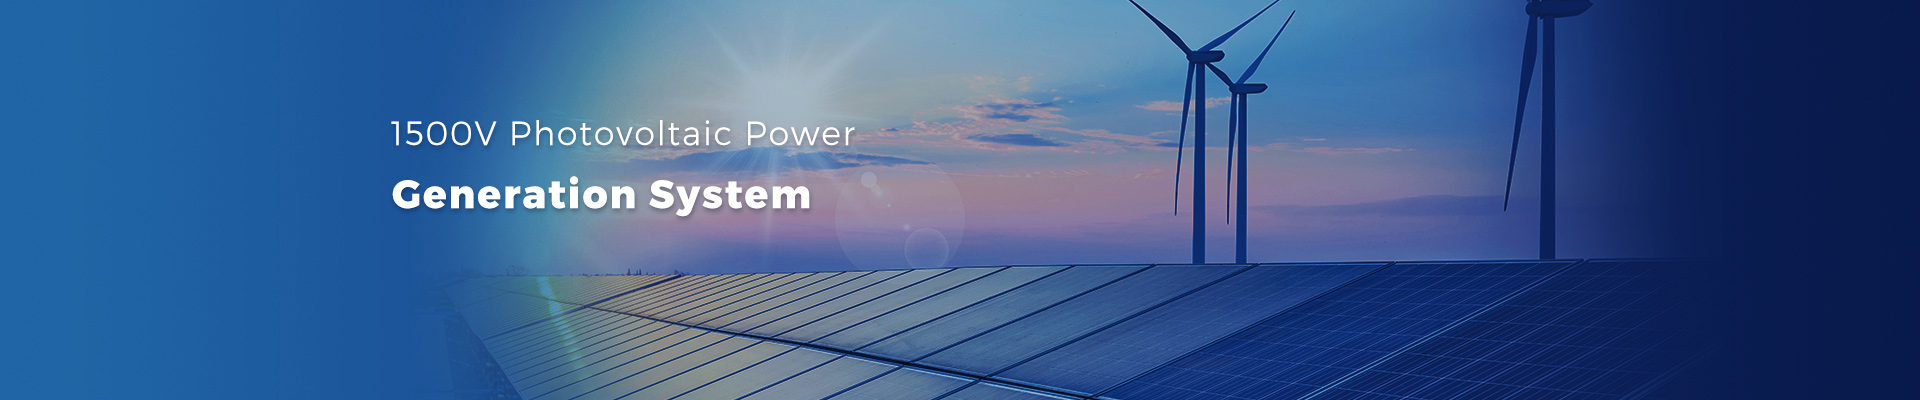 1500V Photovoltaic Power Generation System